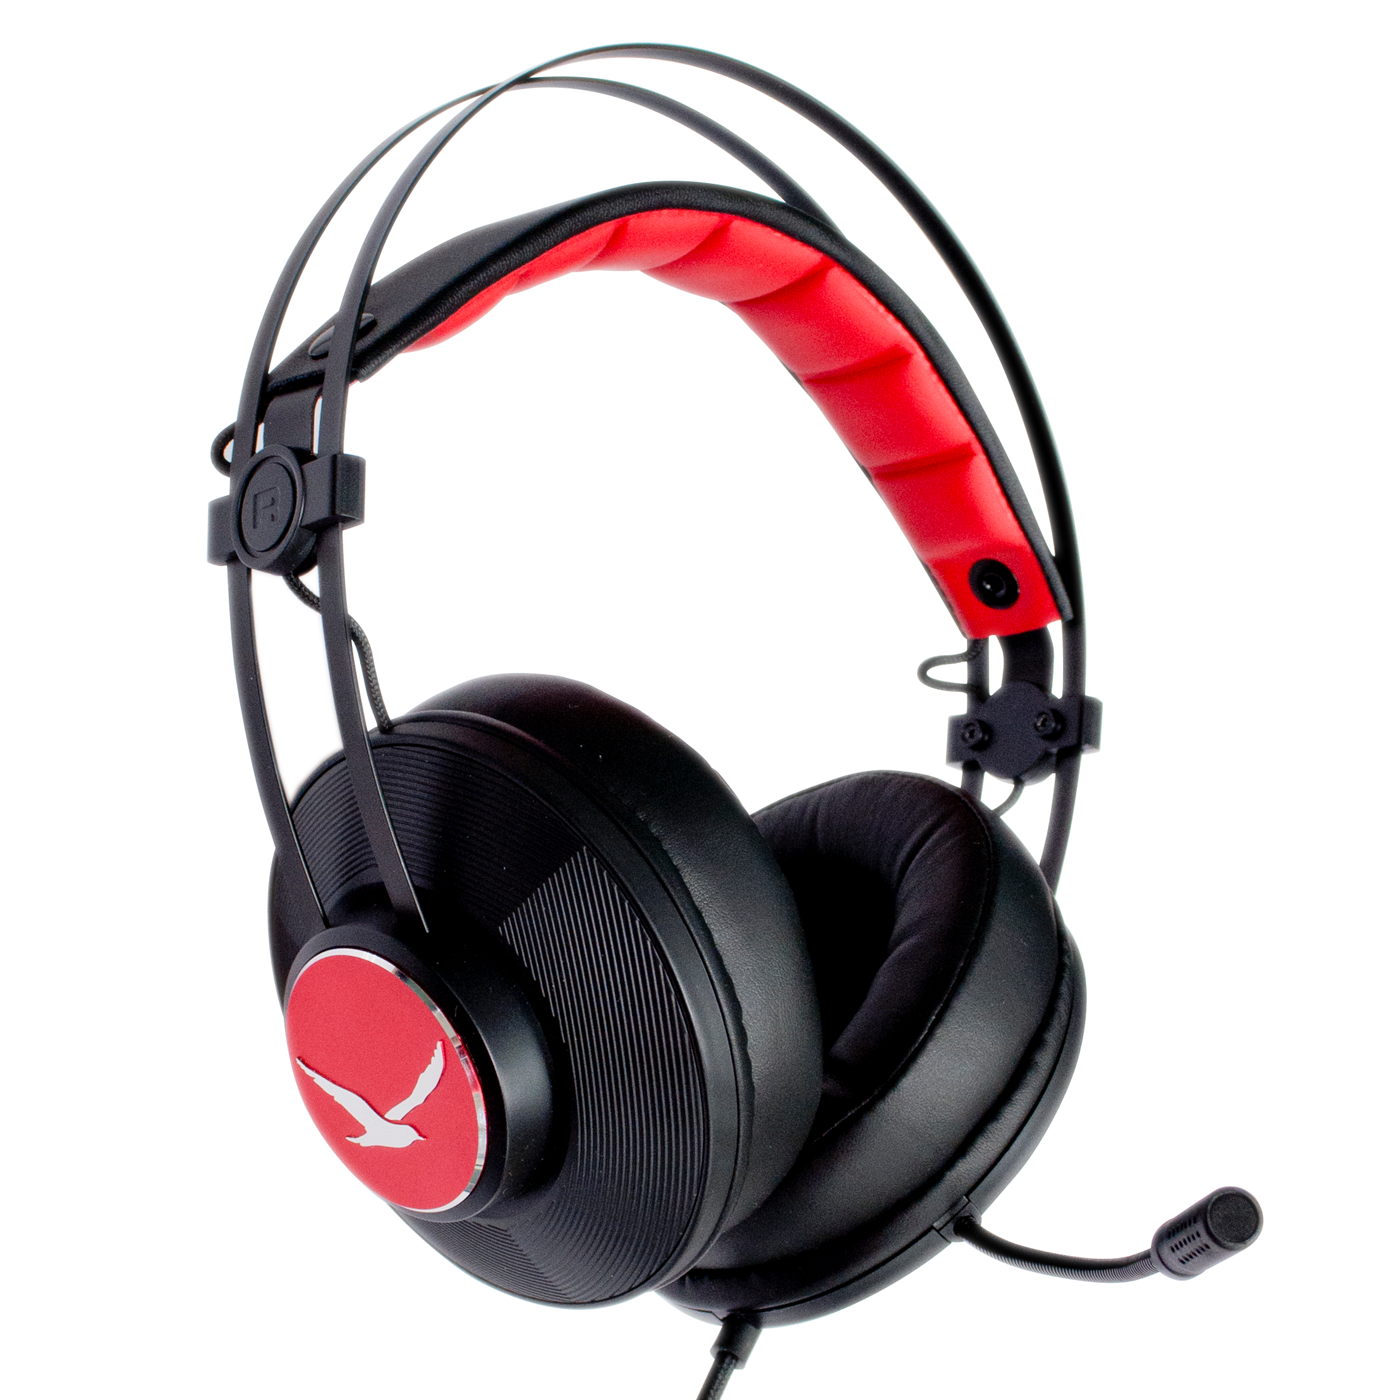 Digifast Apollo X2 headset with noise-canceling microphone angled view reversed